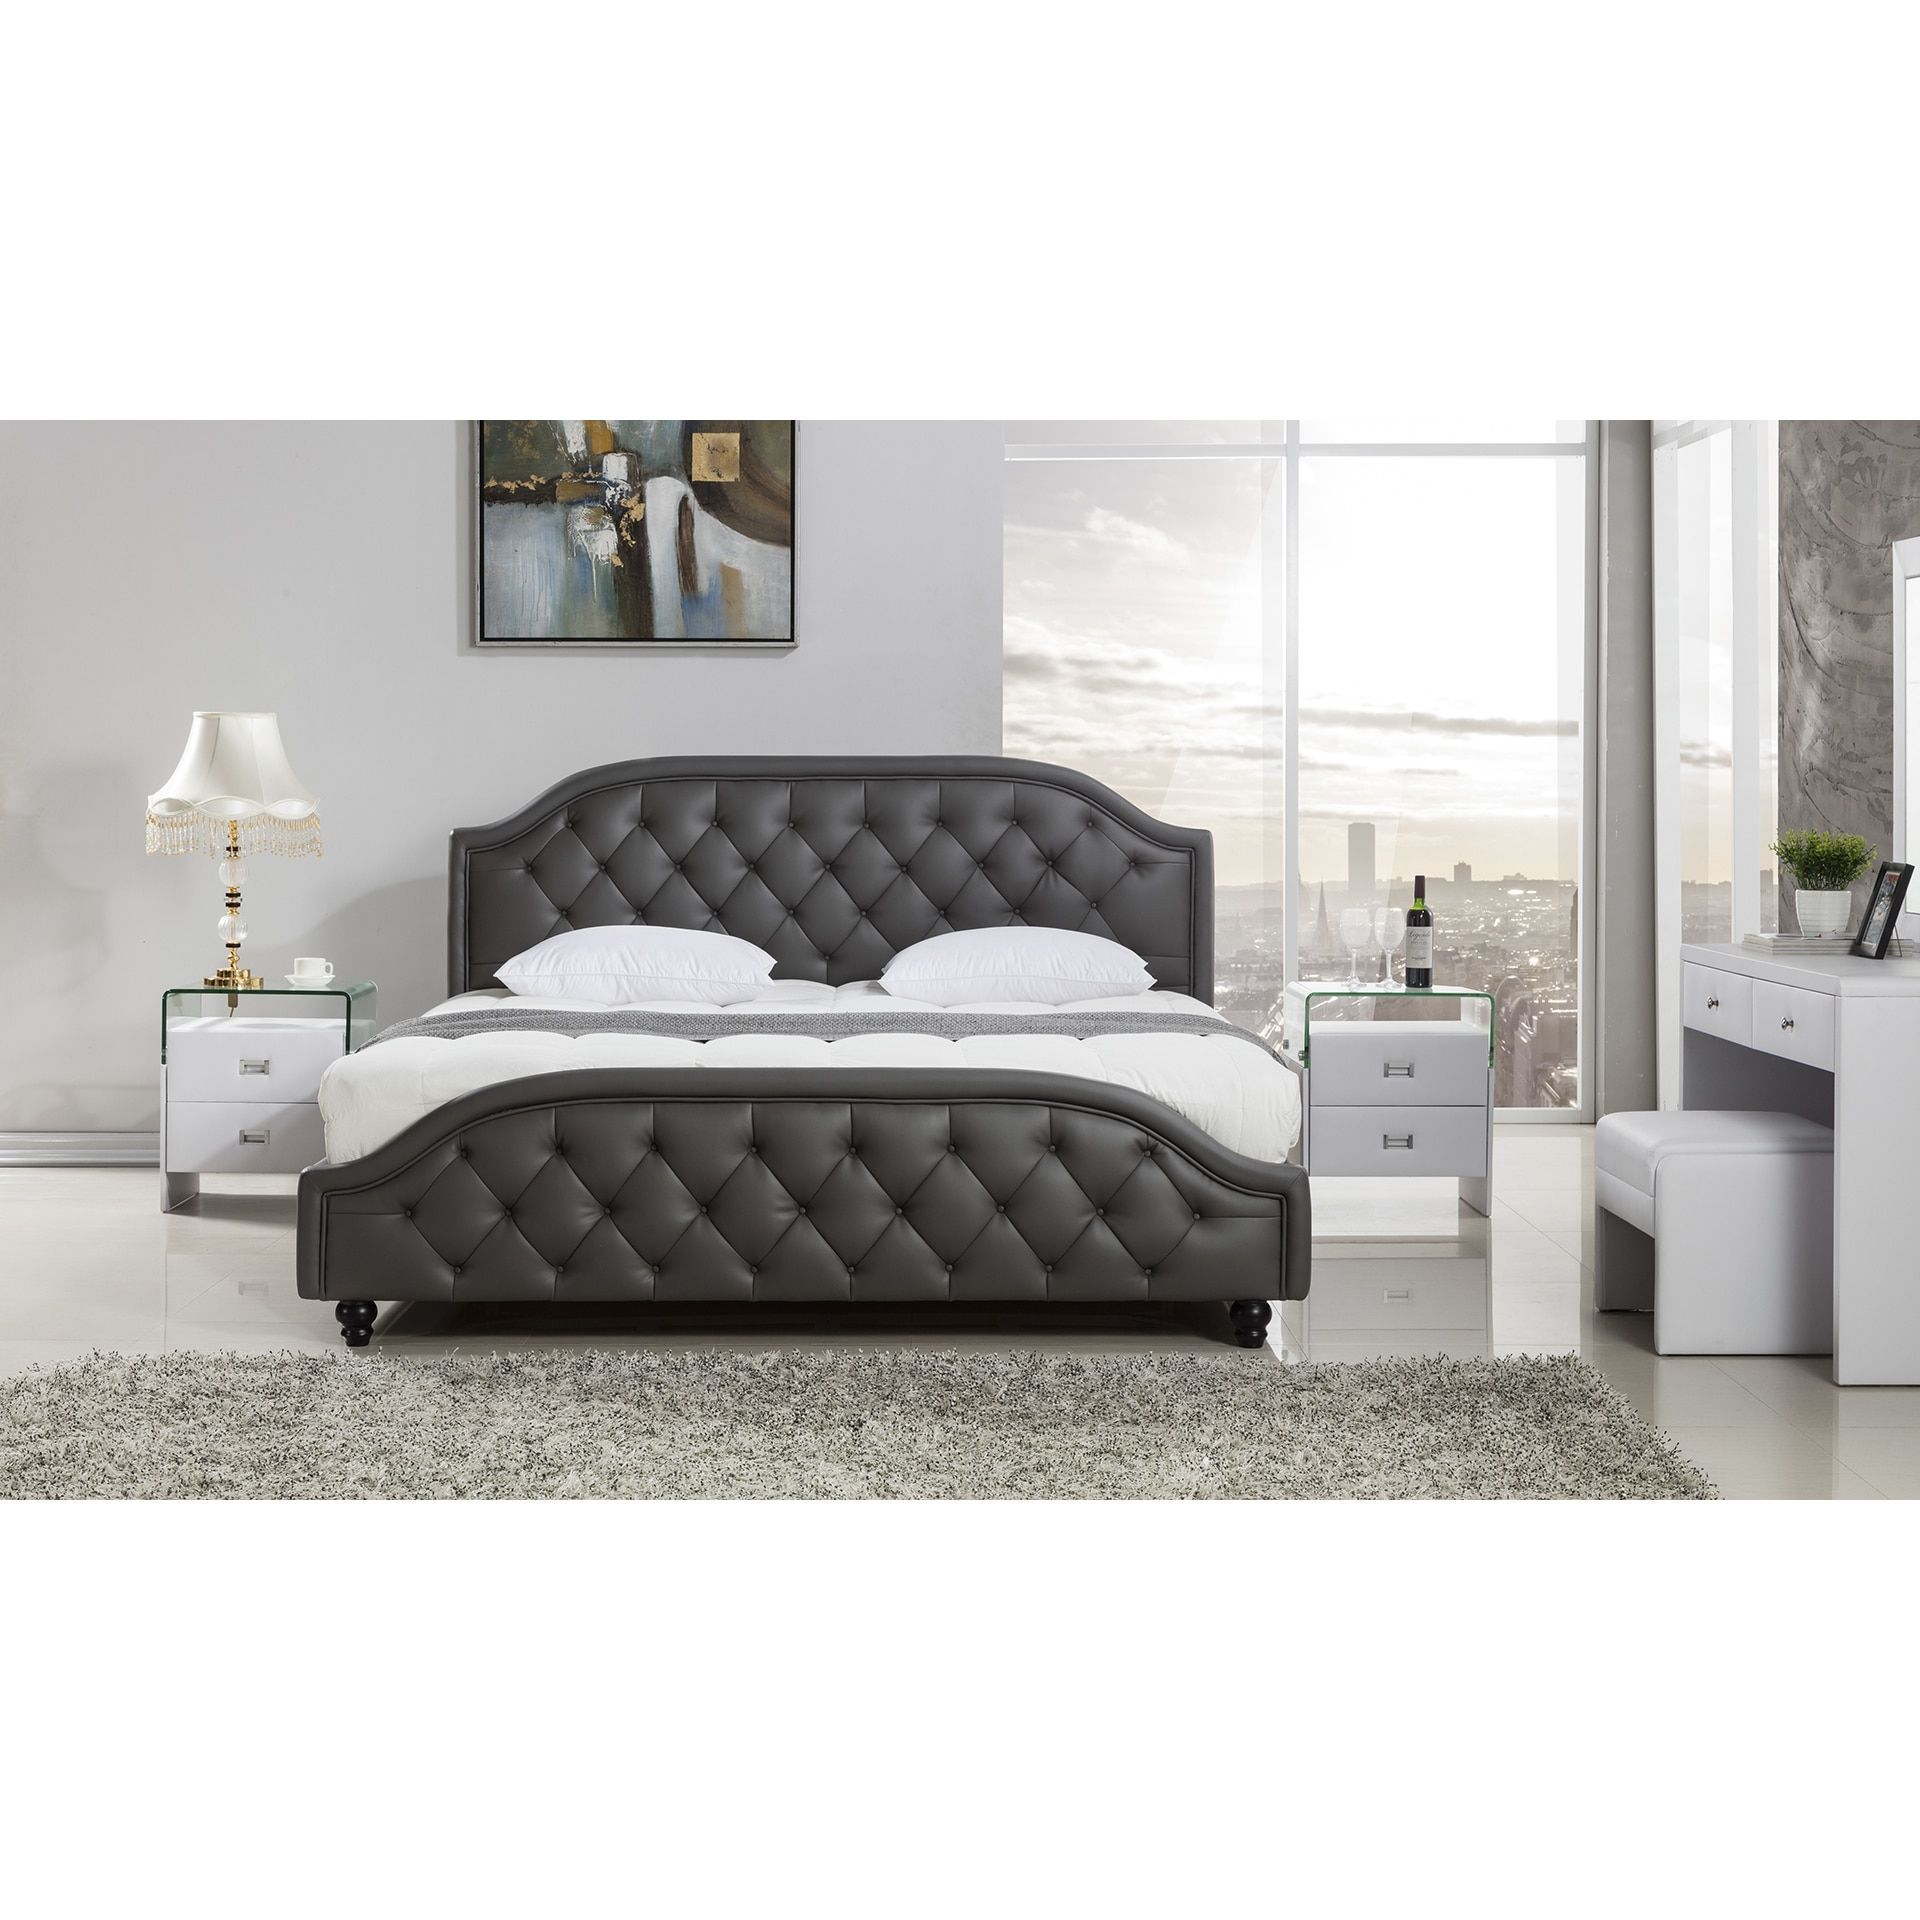 Bedding, Furniture, Electronics, Jewelry